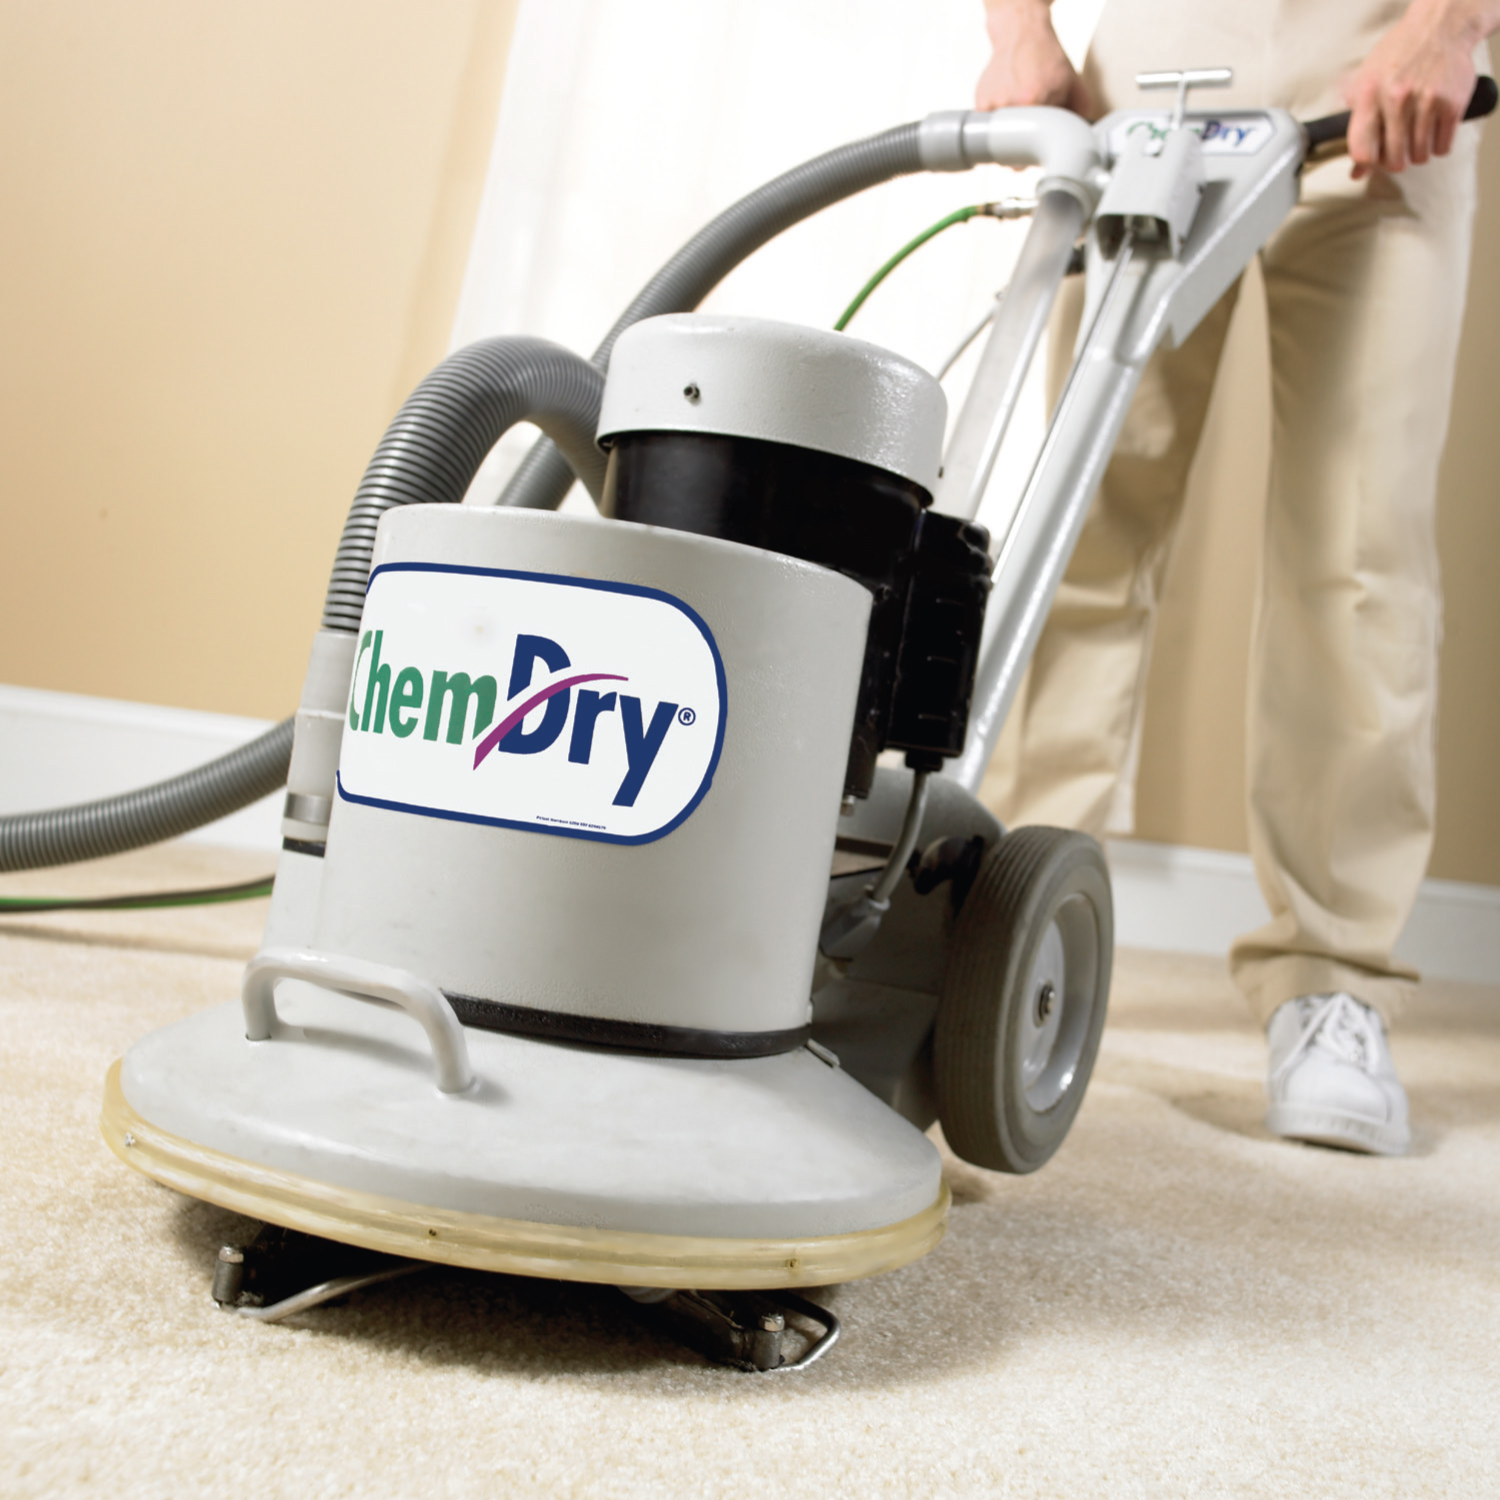 Chem Dry Carpet And Upholstery Cleaner History Flawless